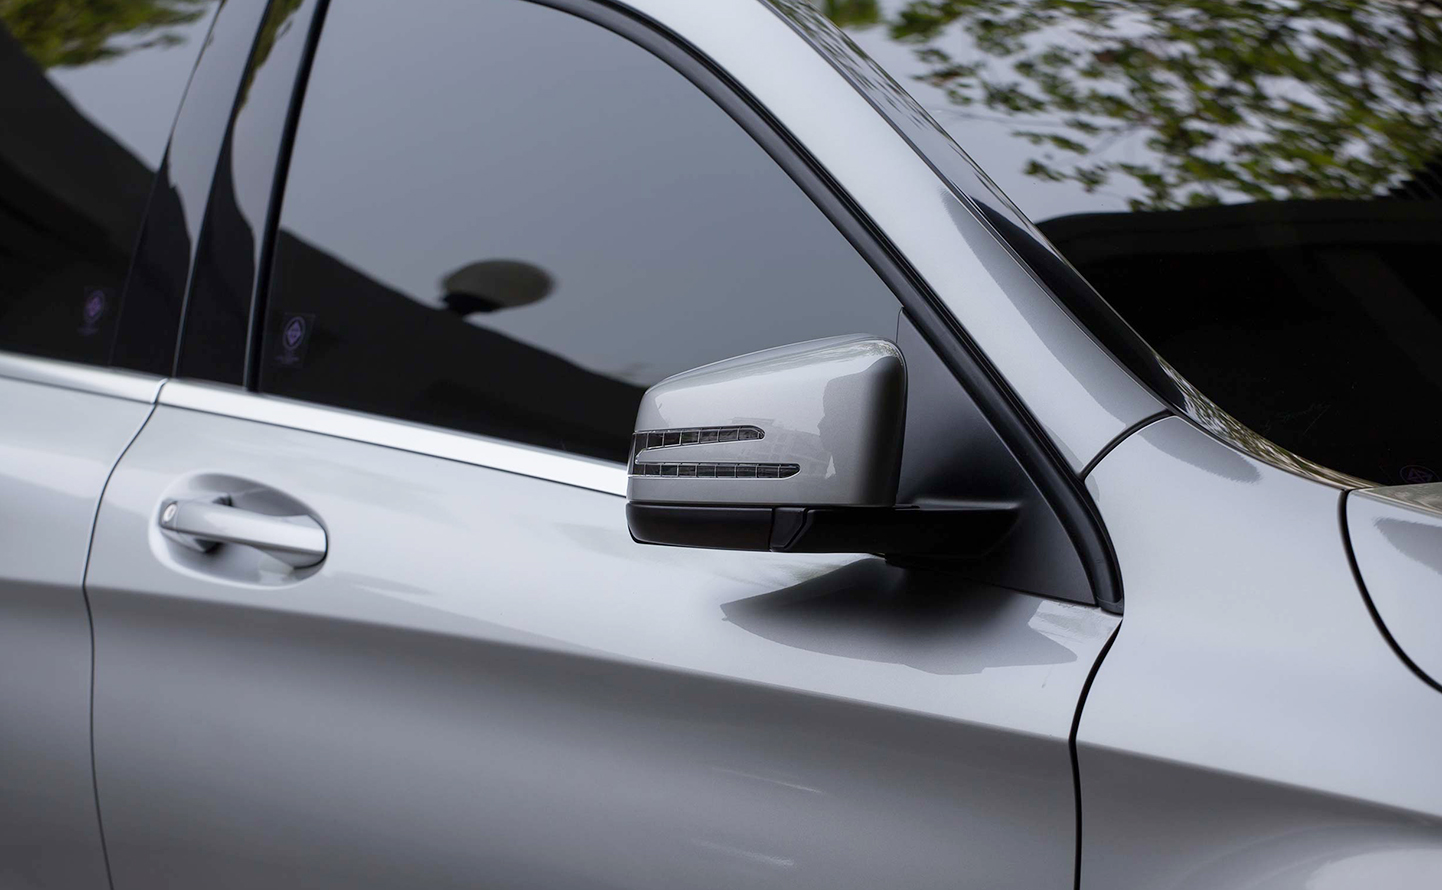 What You Need to Know Before Going For Car Window Tinting